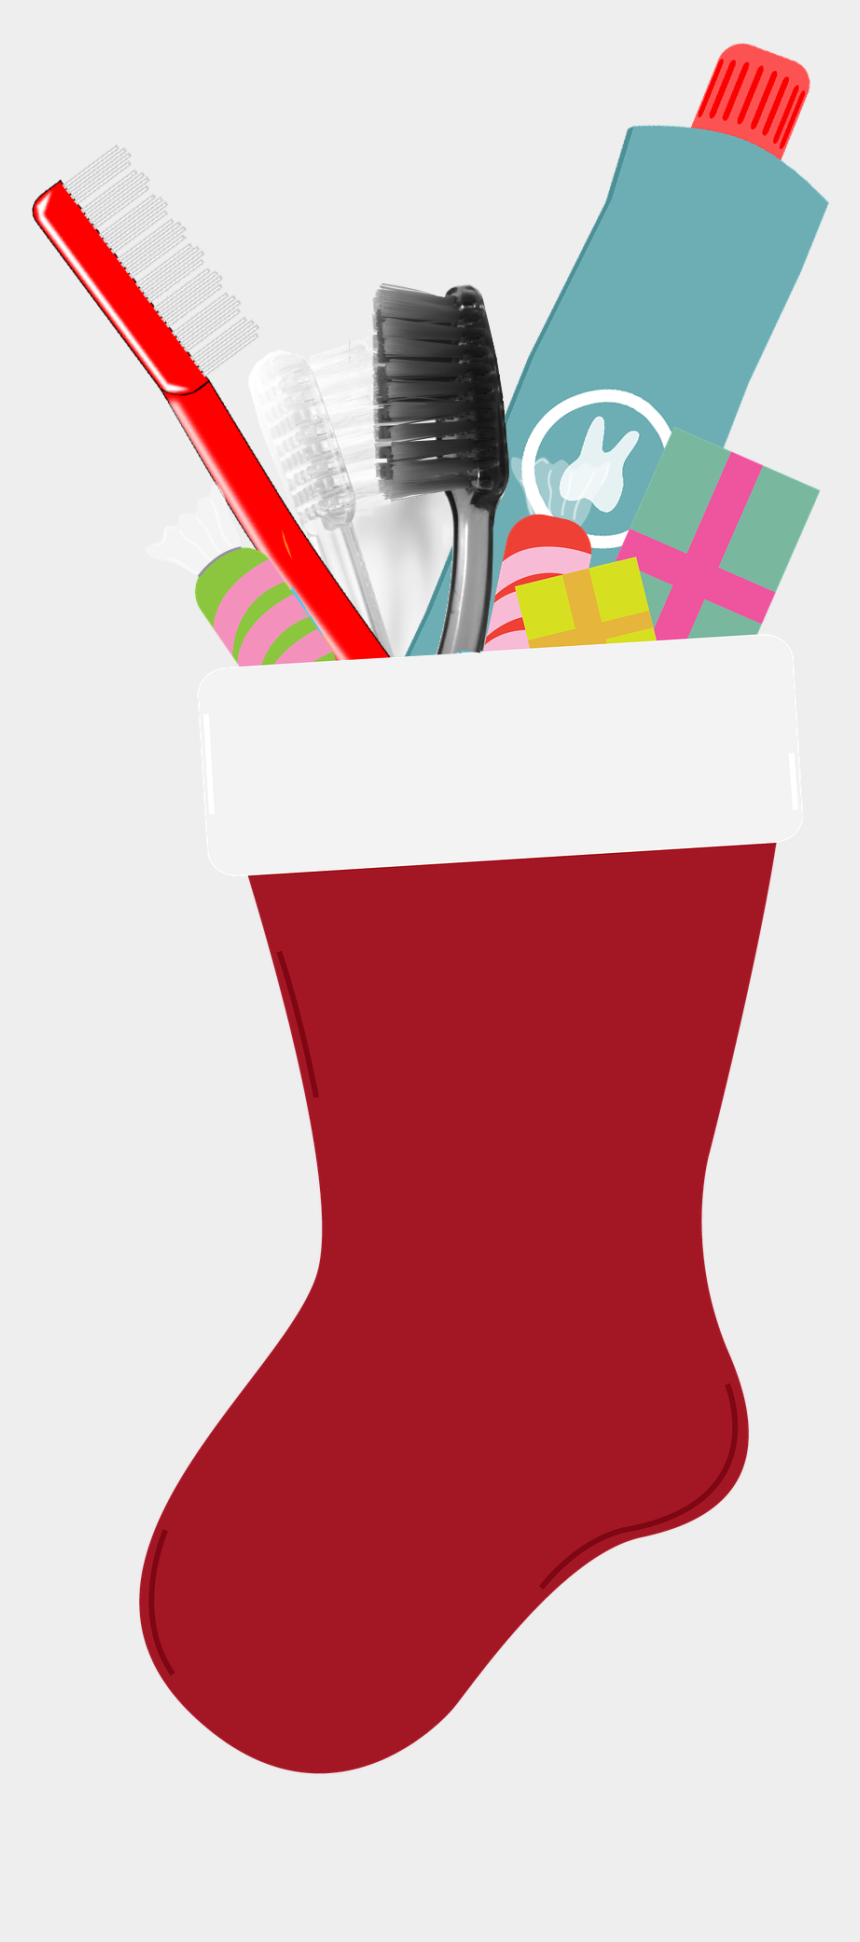 stocking clipart, Cartoons - Clip Library Library Stocking Stuffer Clipart - Christmas Stocking